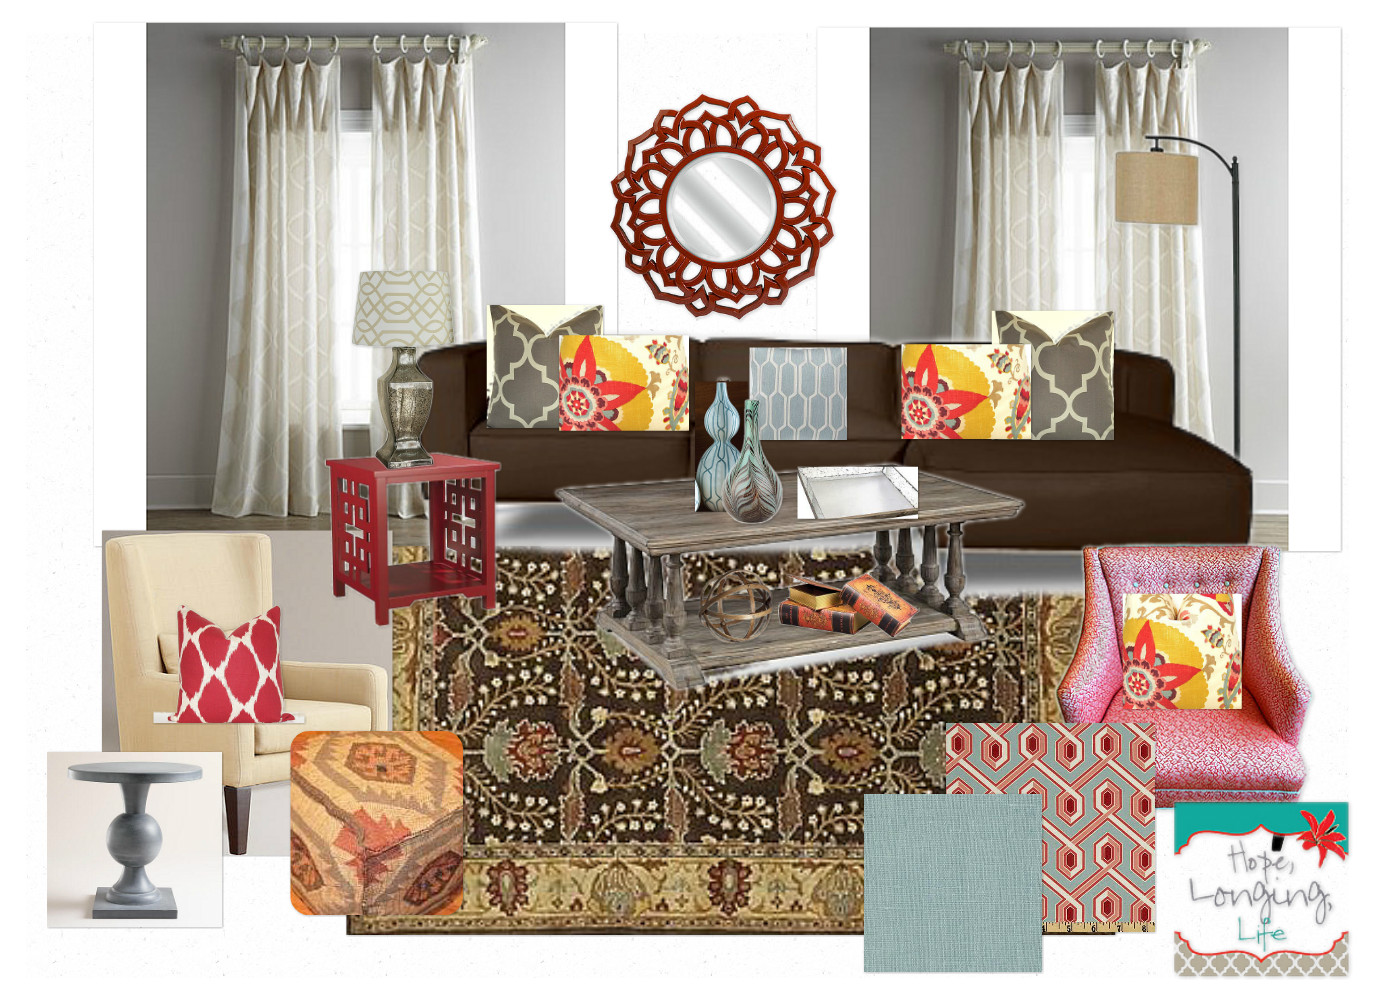 Hope Longing Life Bohemian Collected Living Room Design